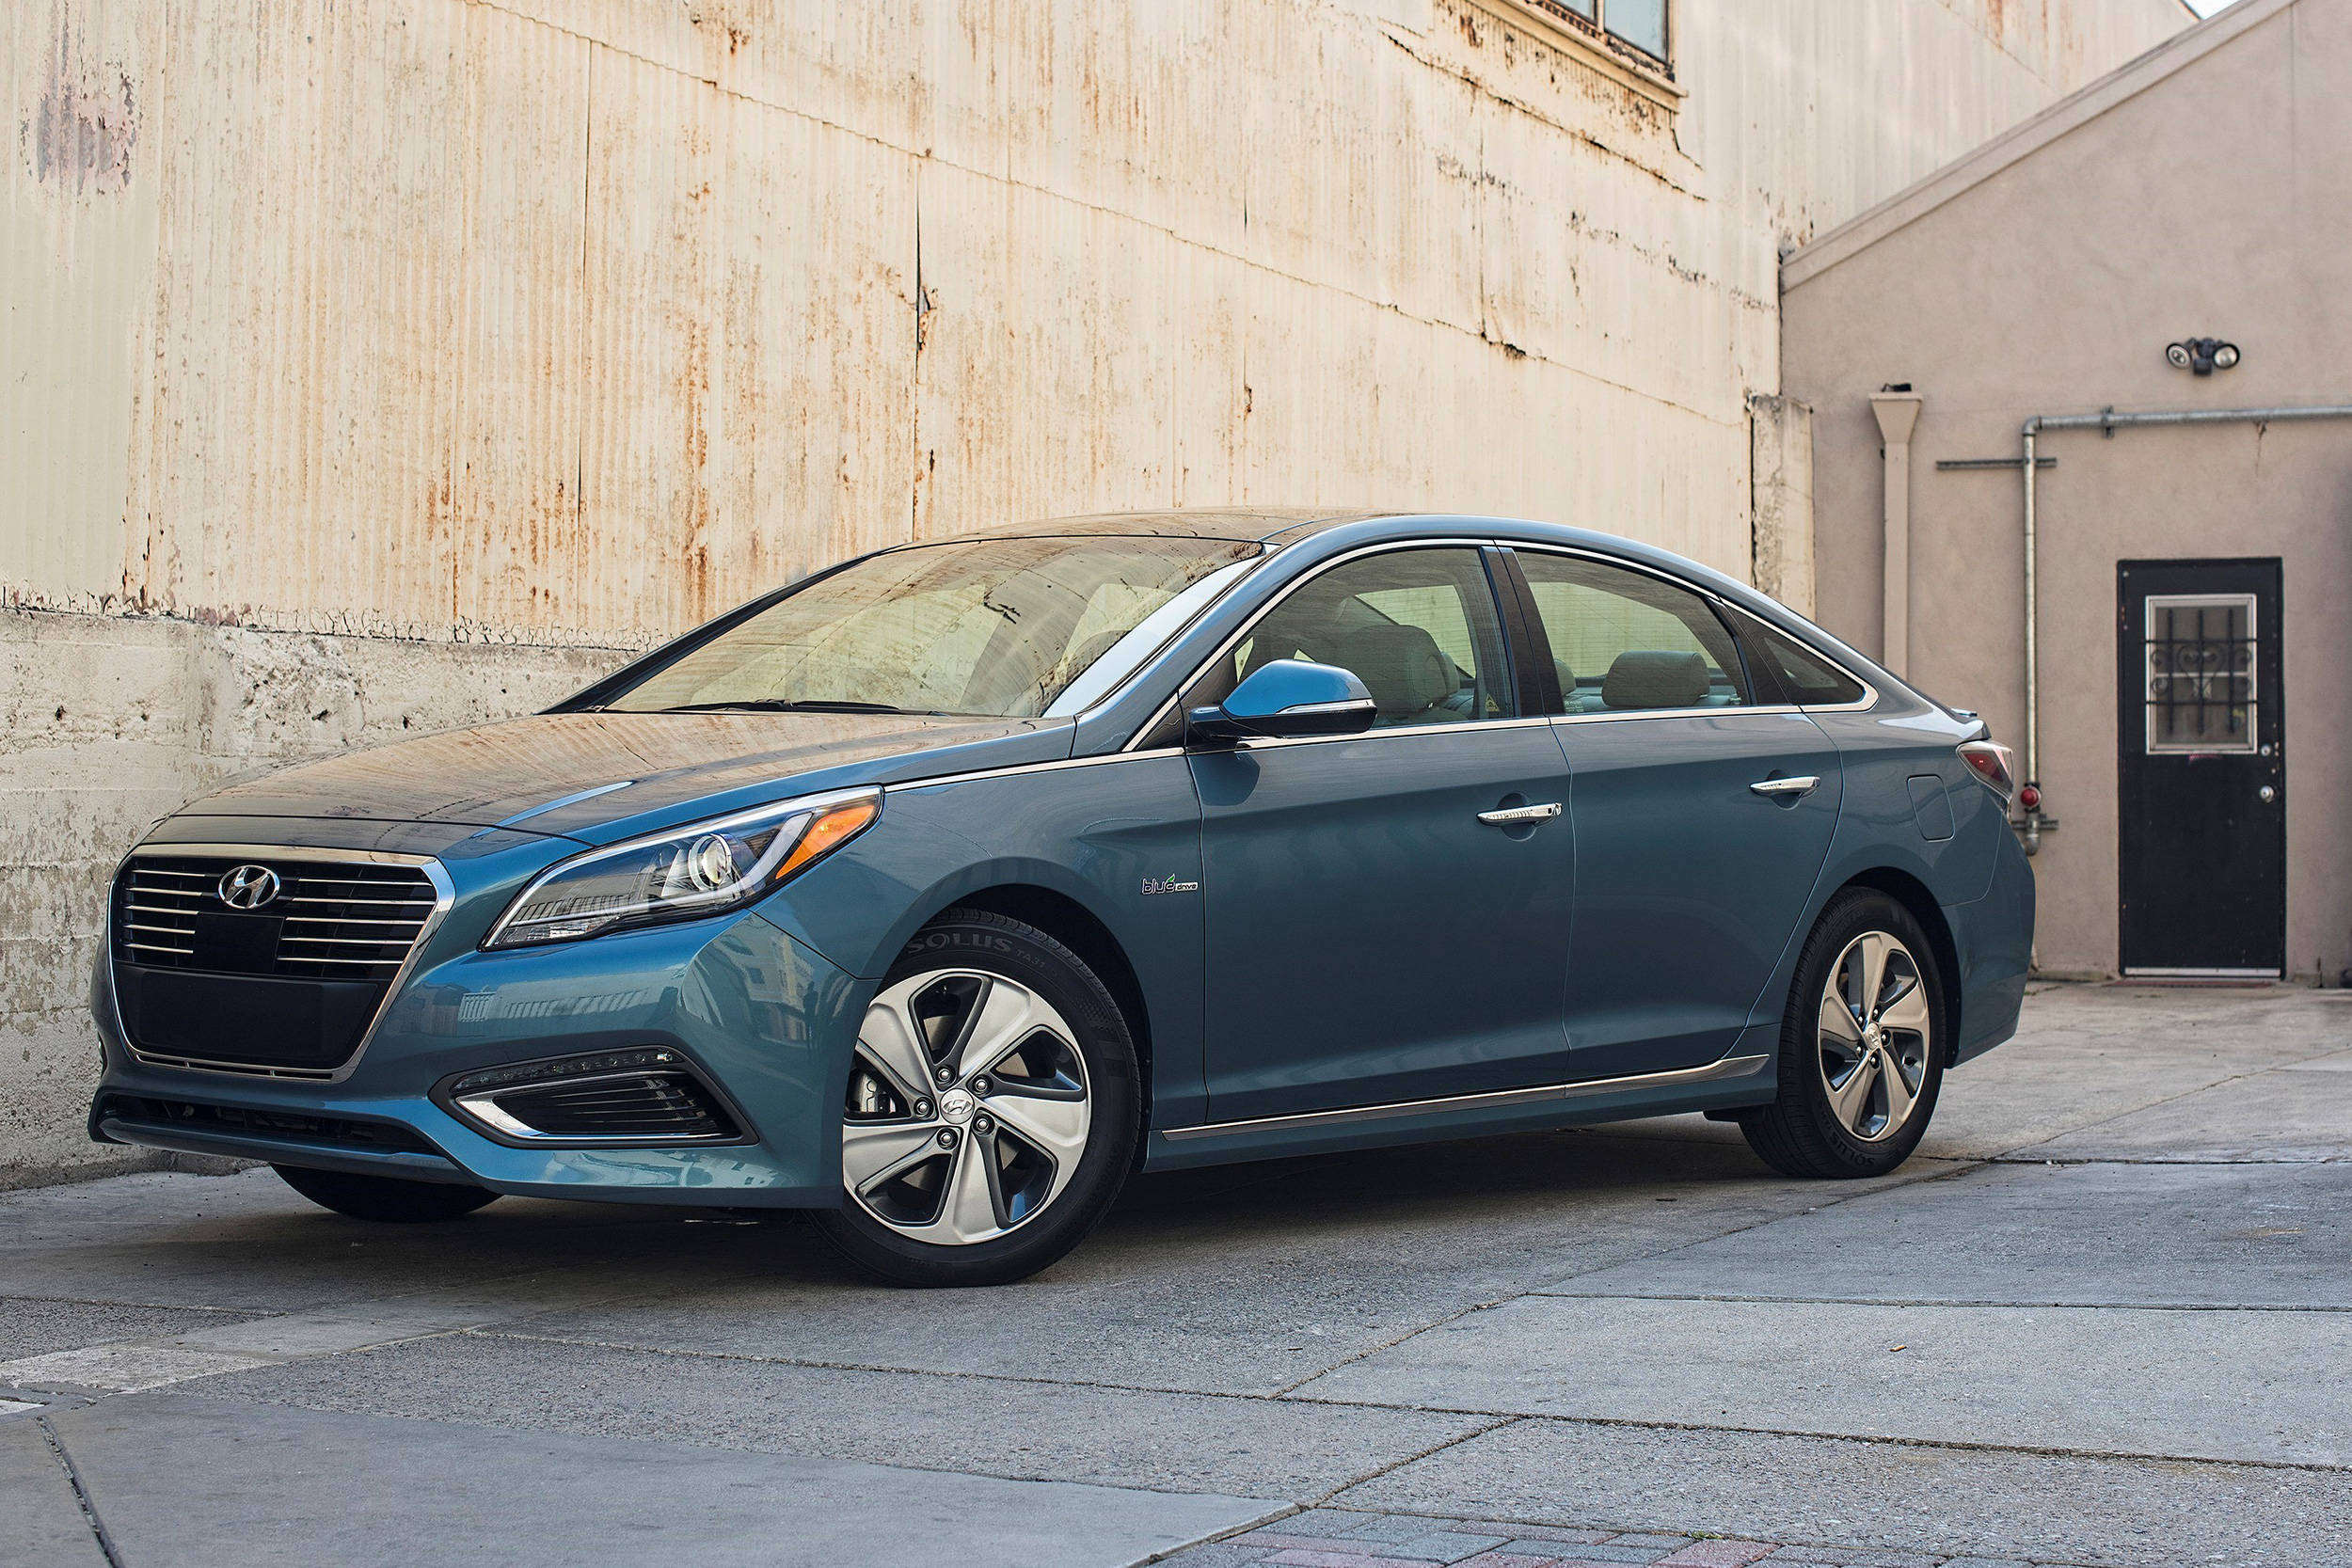 its september market sonata midsized blog interior s price class space model this great the thanks in hyundai review to and leading features remains leader exclusive year low waikem htm a